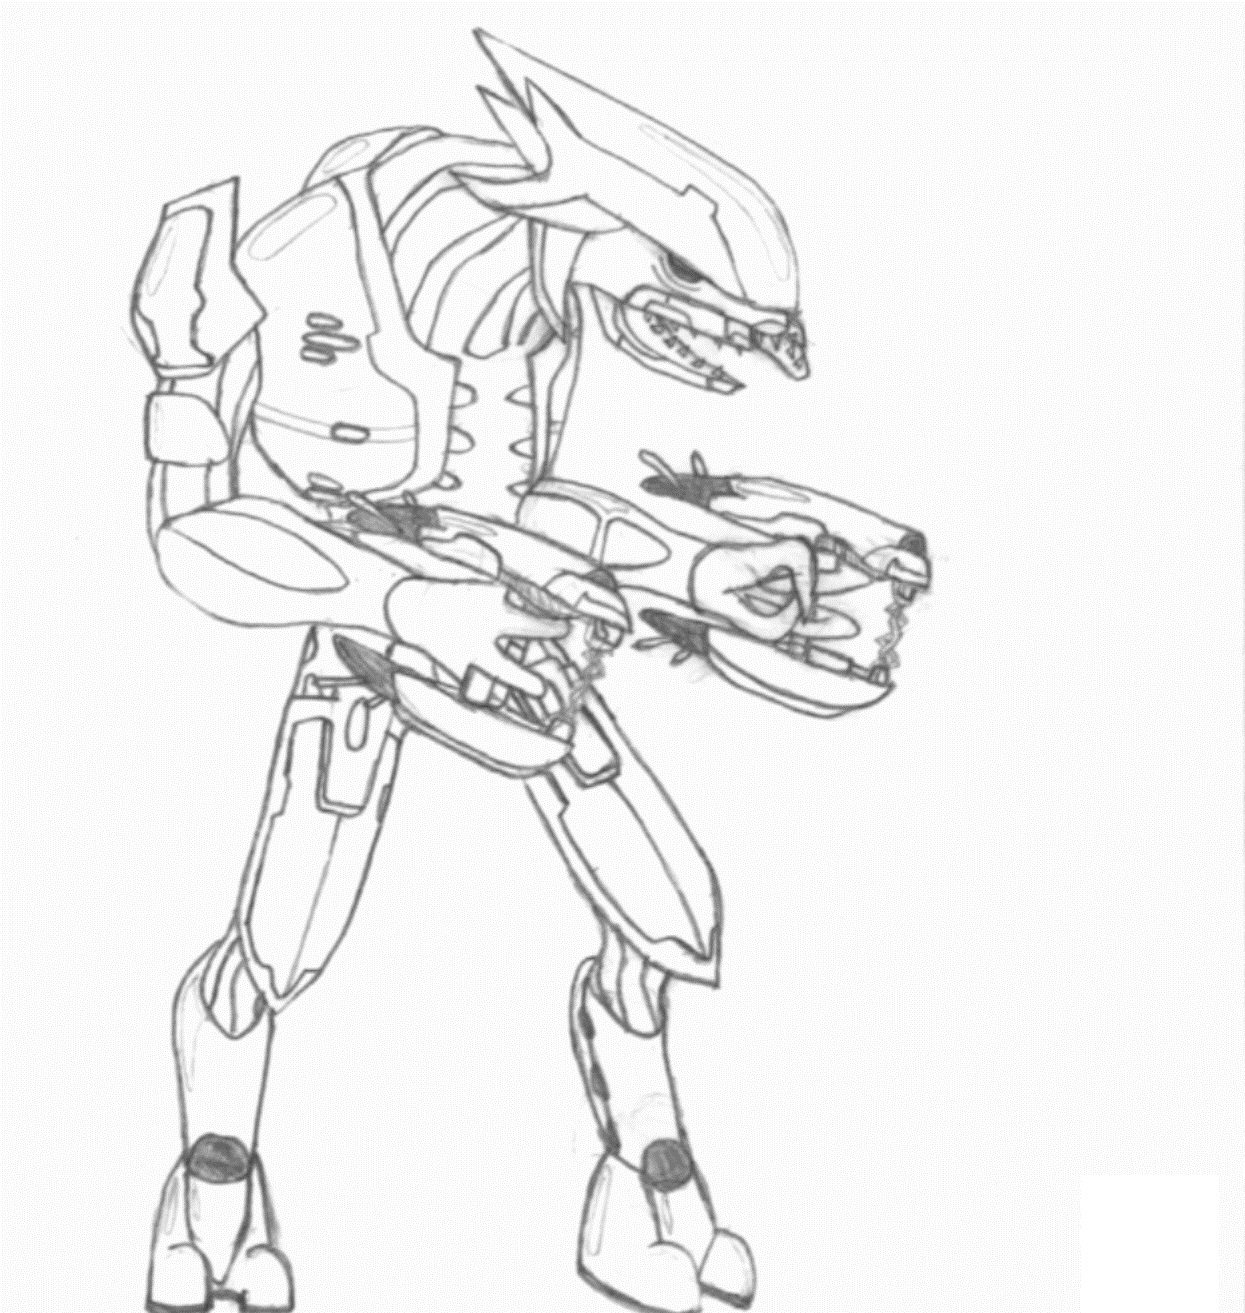 halo coloring pages to print - Color Book Printing